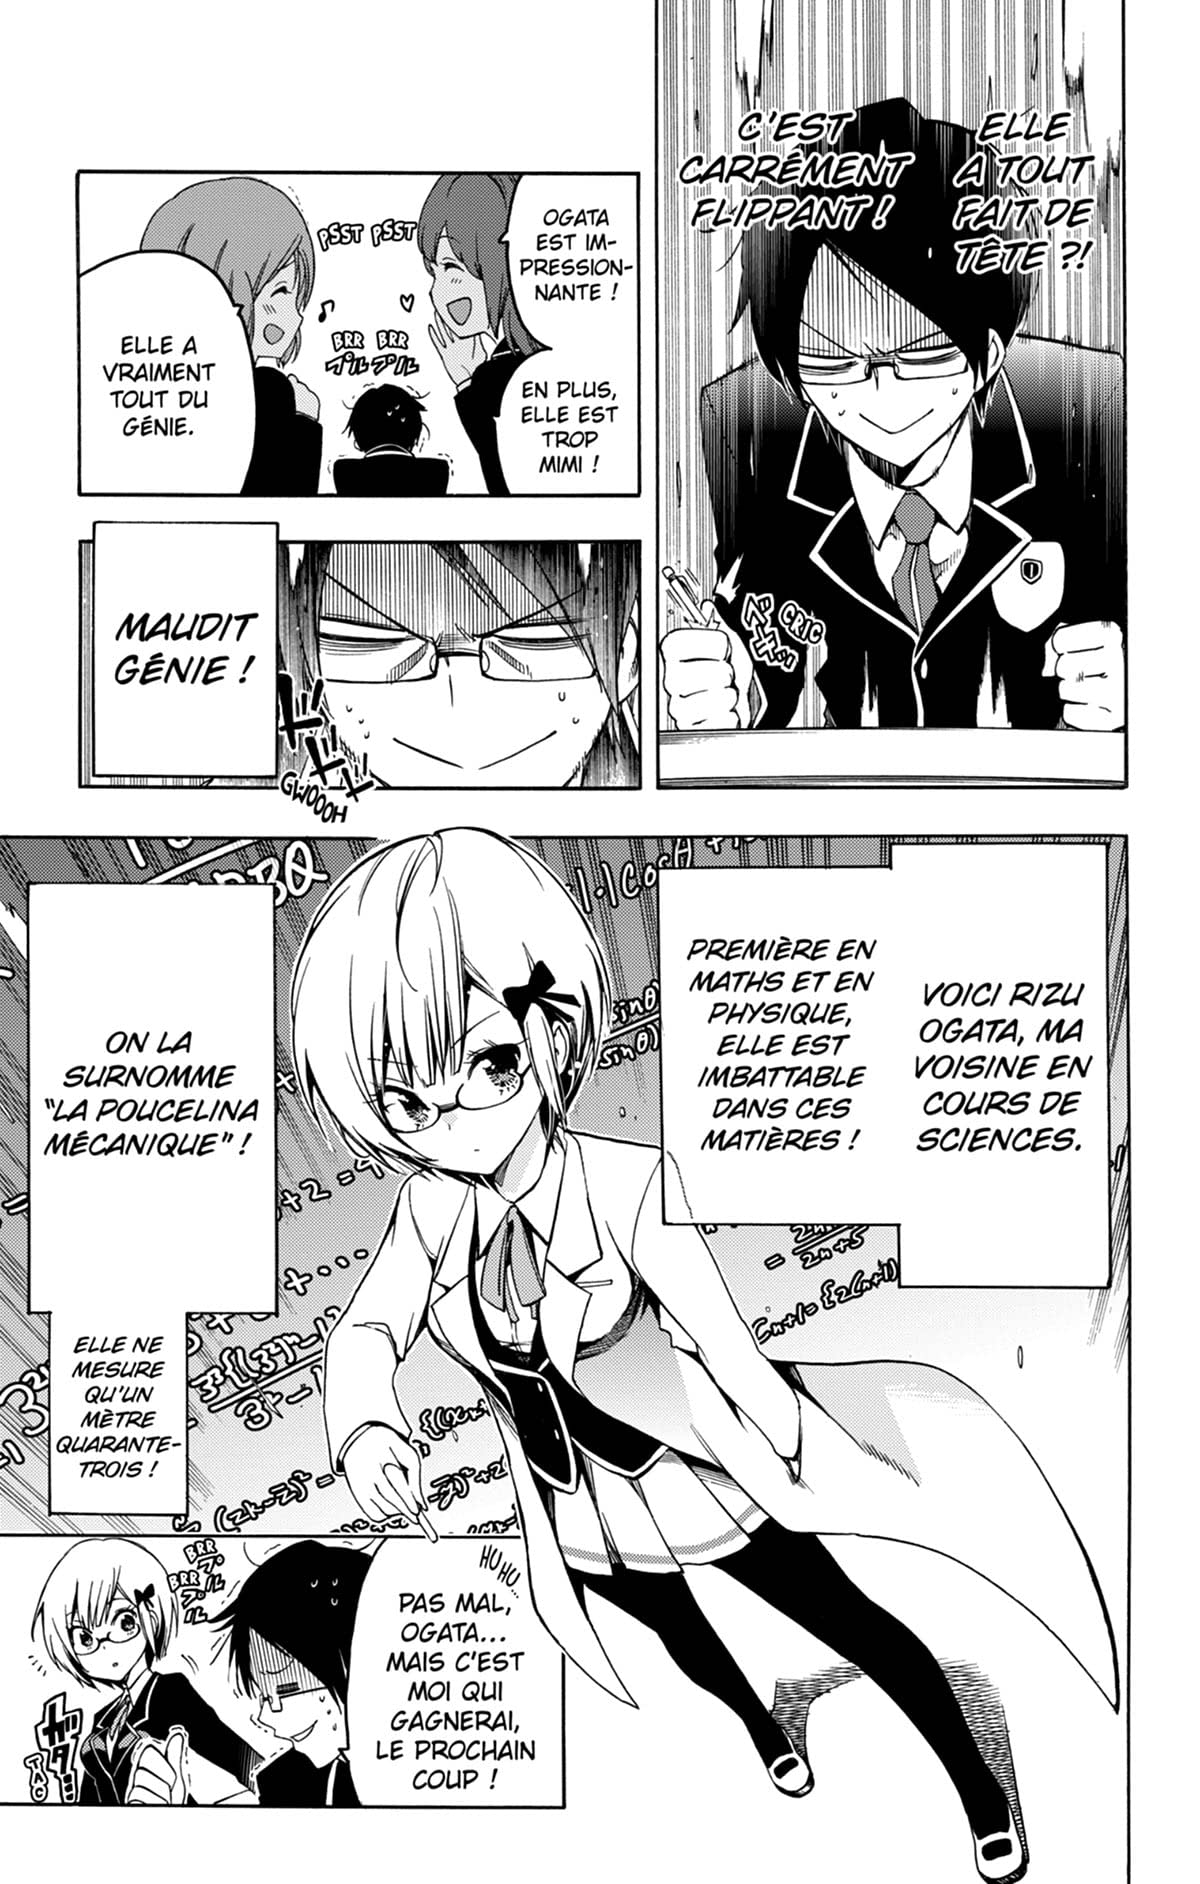 We never learn: Chapitre 1